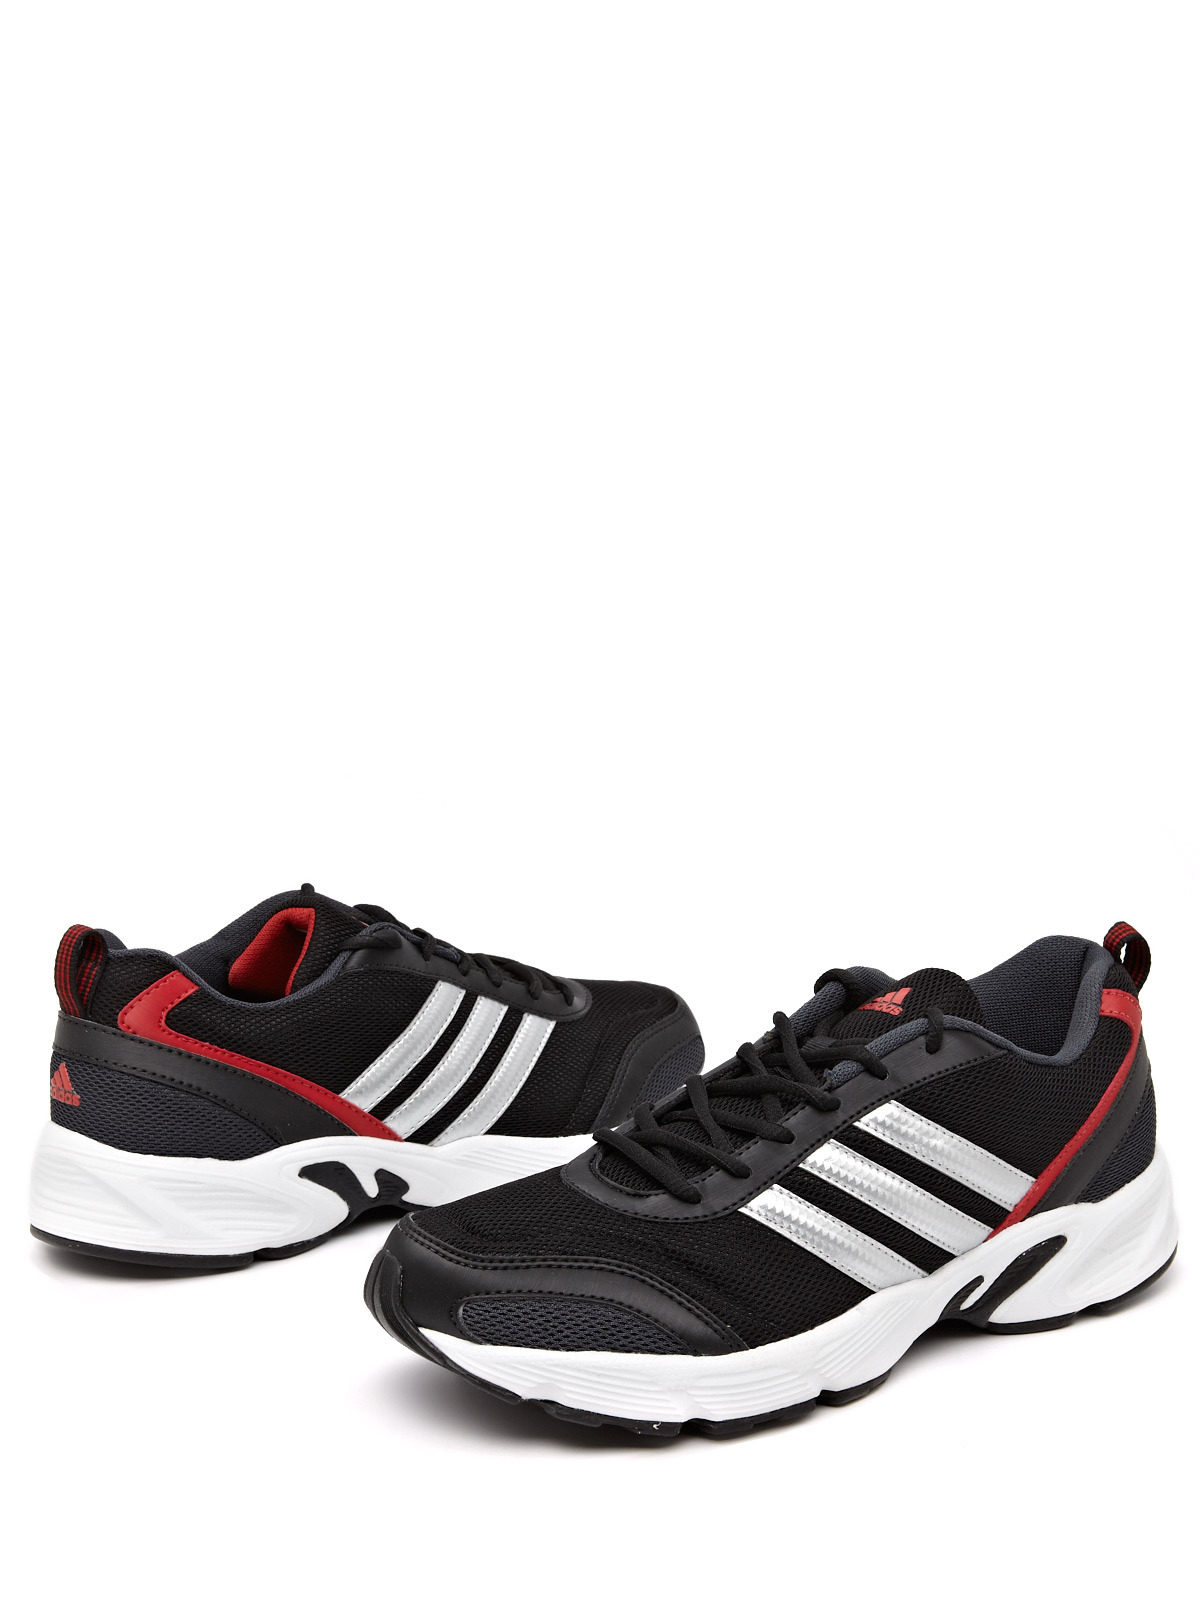 Cheapest Adidas Shoes Online India